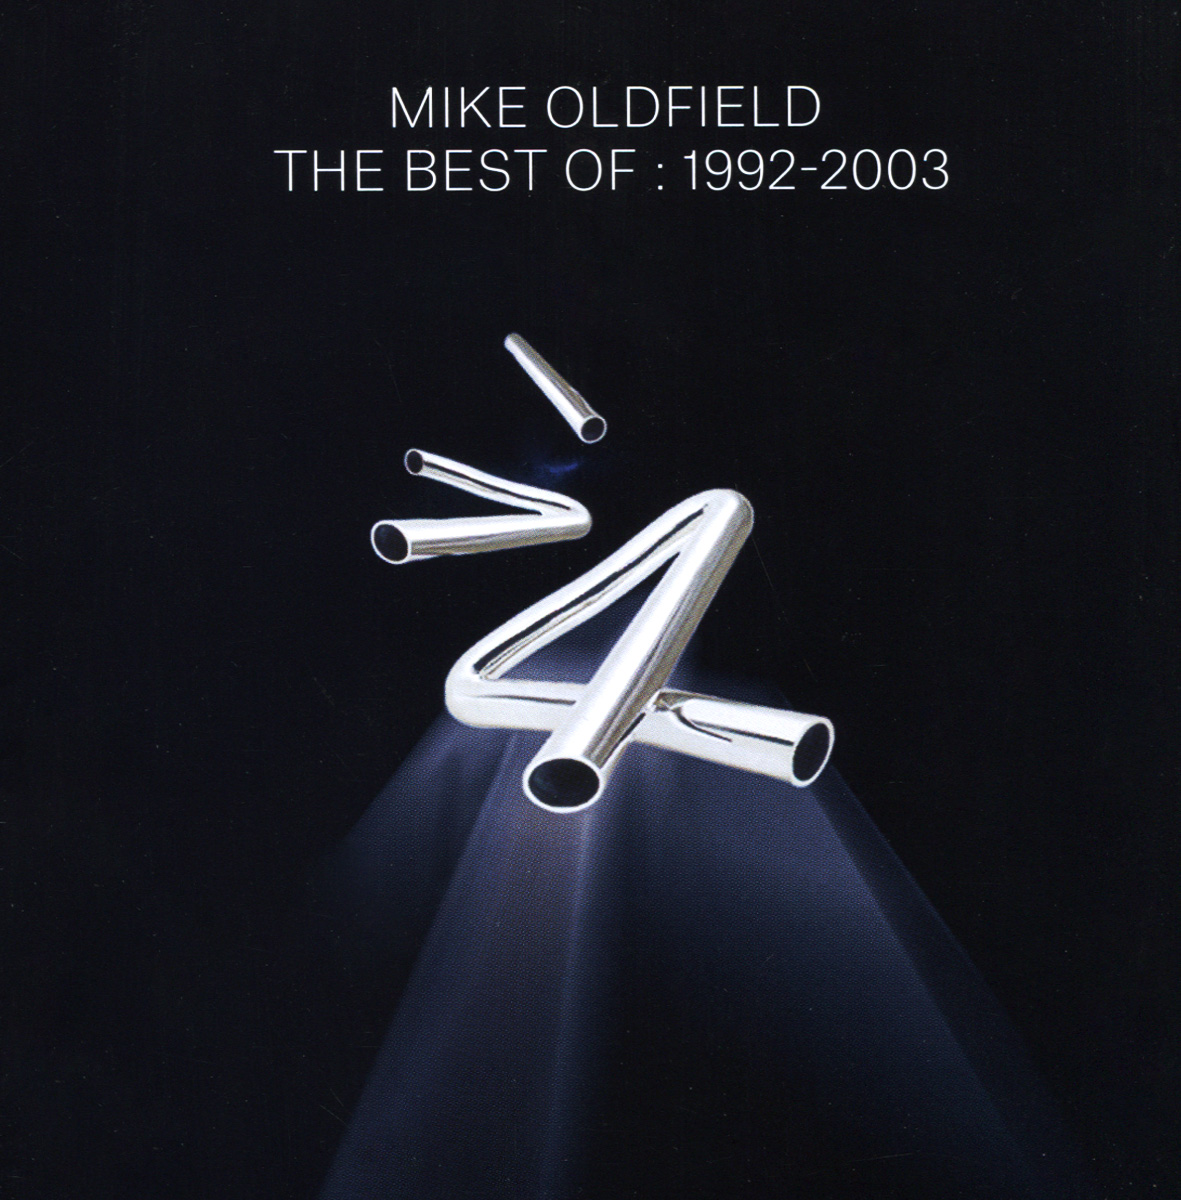 Майк Олдфилд Mike Oldfield. The Best Of: 1992-2003 (2 CD) майк олдфилд mike oldfield man on the rocks limited deluxe edition 3 cd